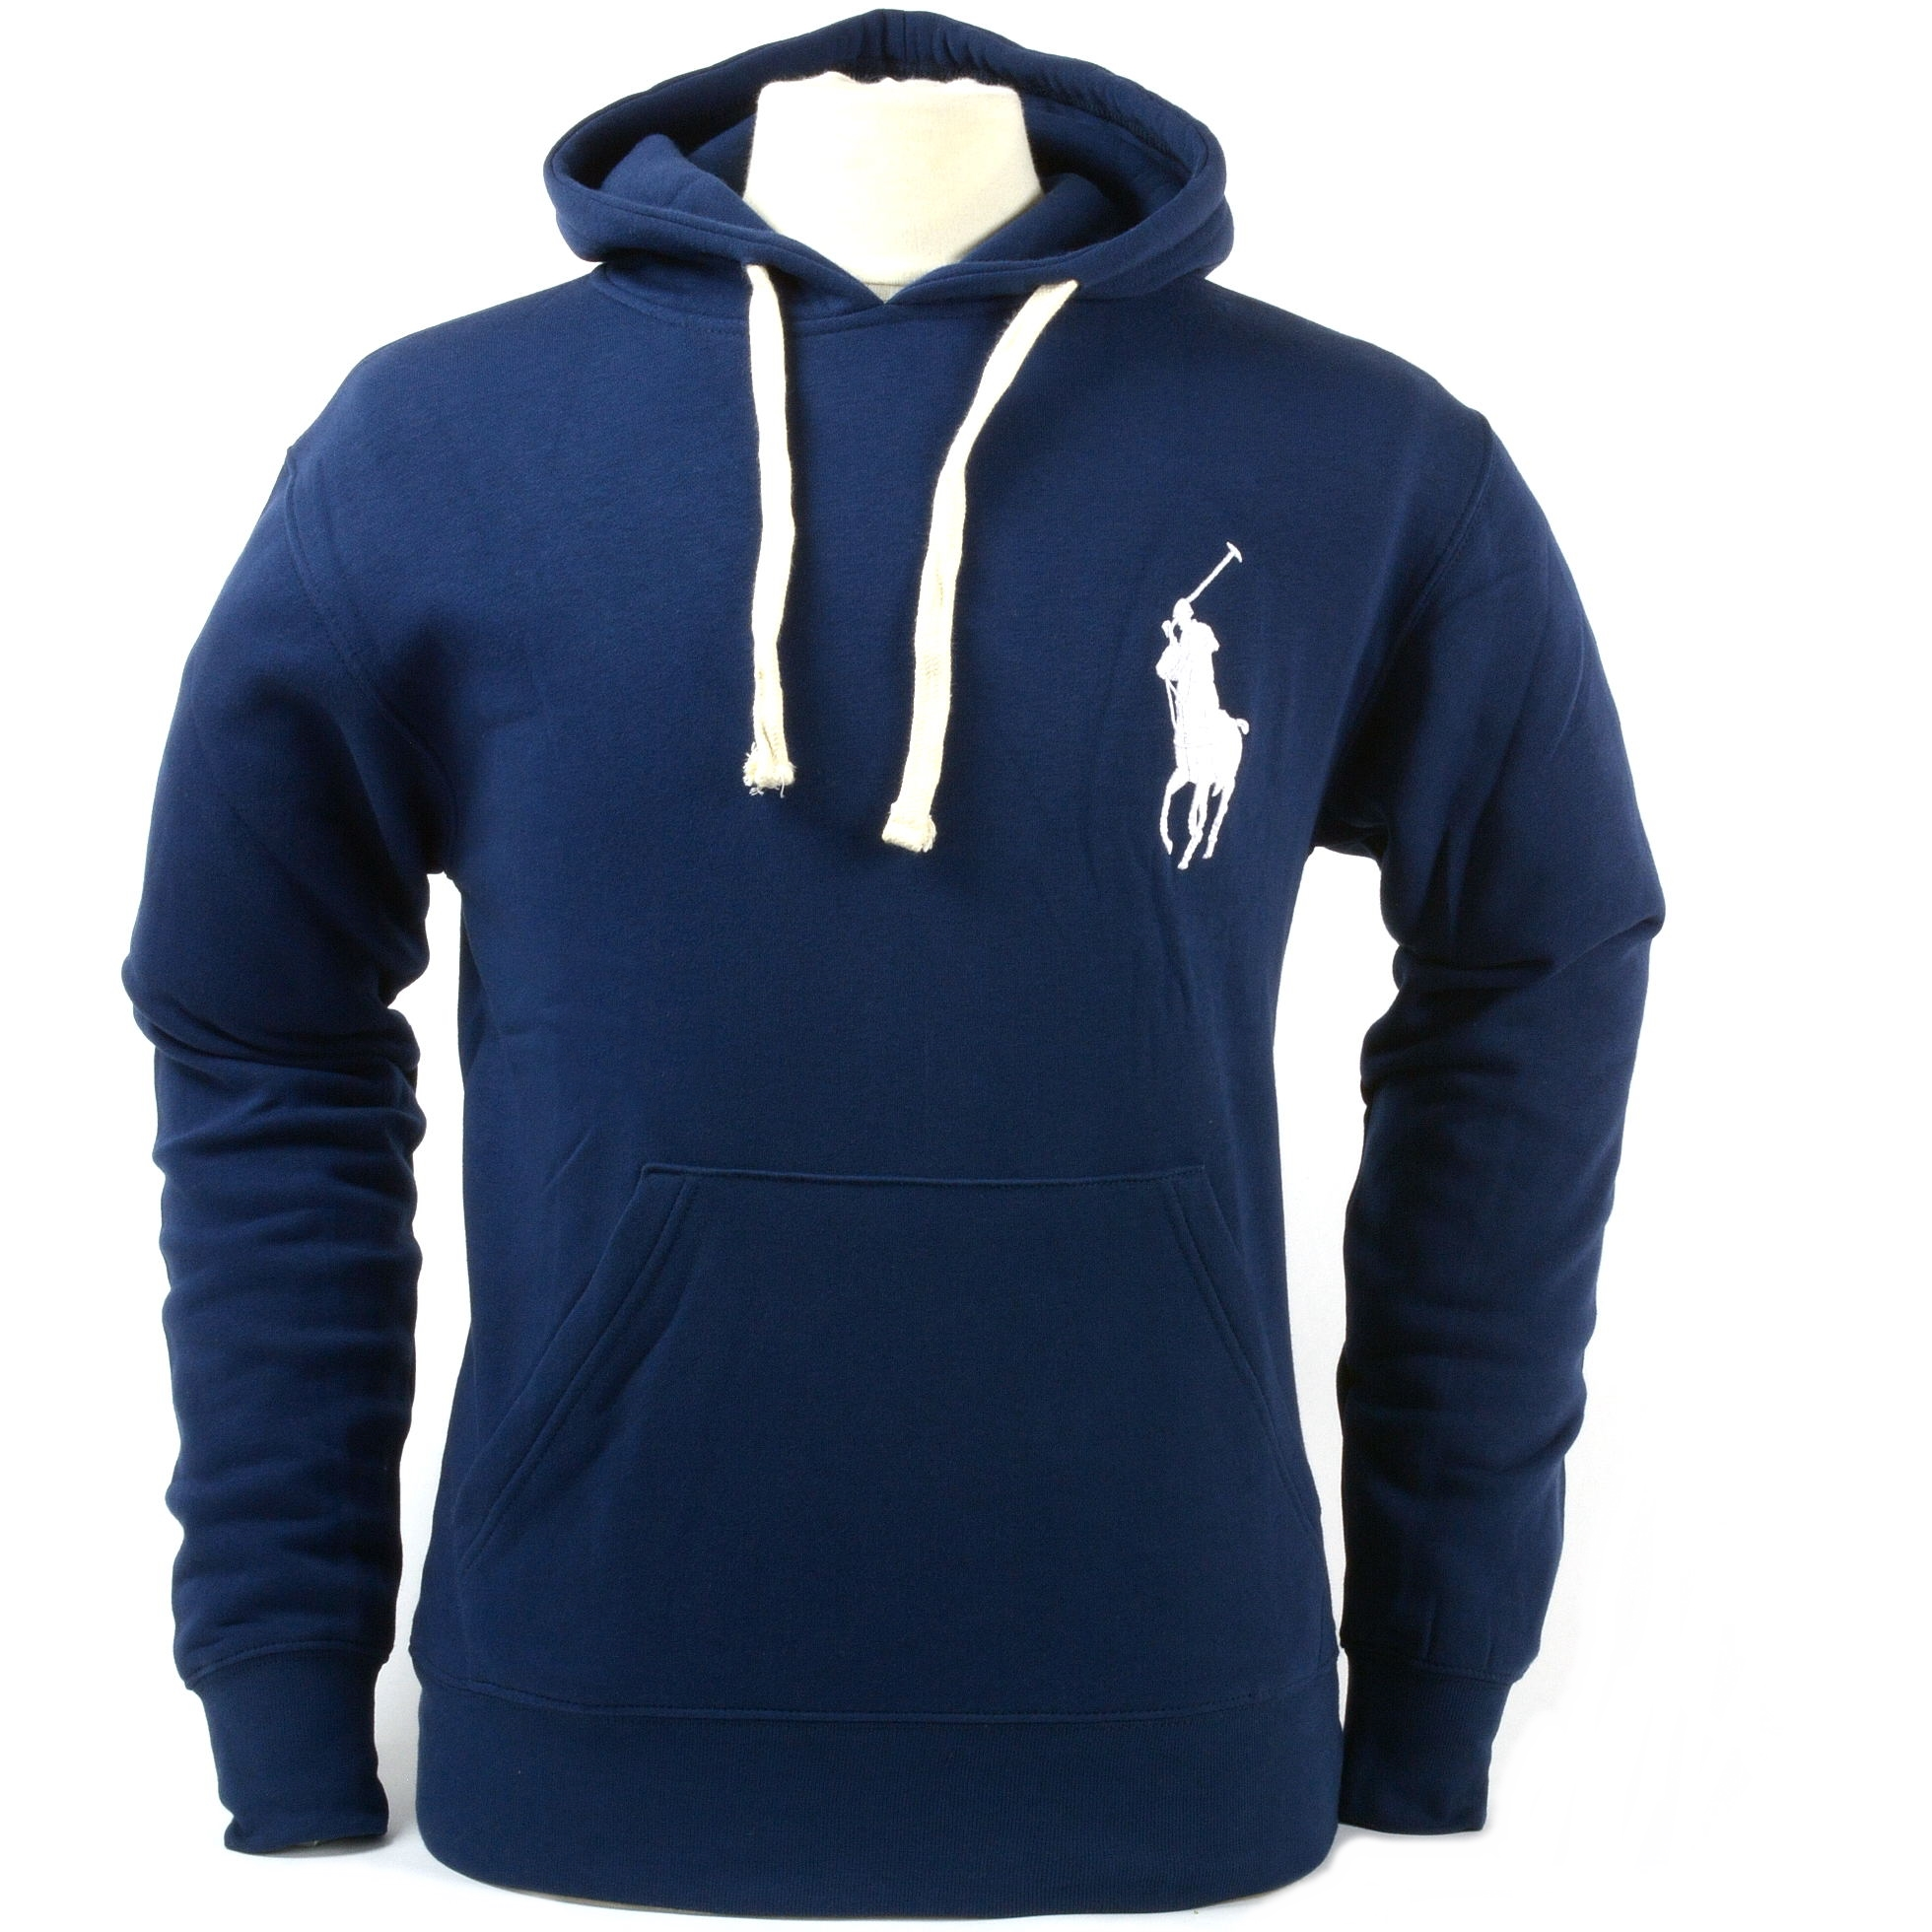 polo ralph lauren mens big pony hoodie drawstring pullover hooded sweatshirt new ebay. Black Bedroom Furniture Sets. Home Design Ideas